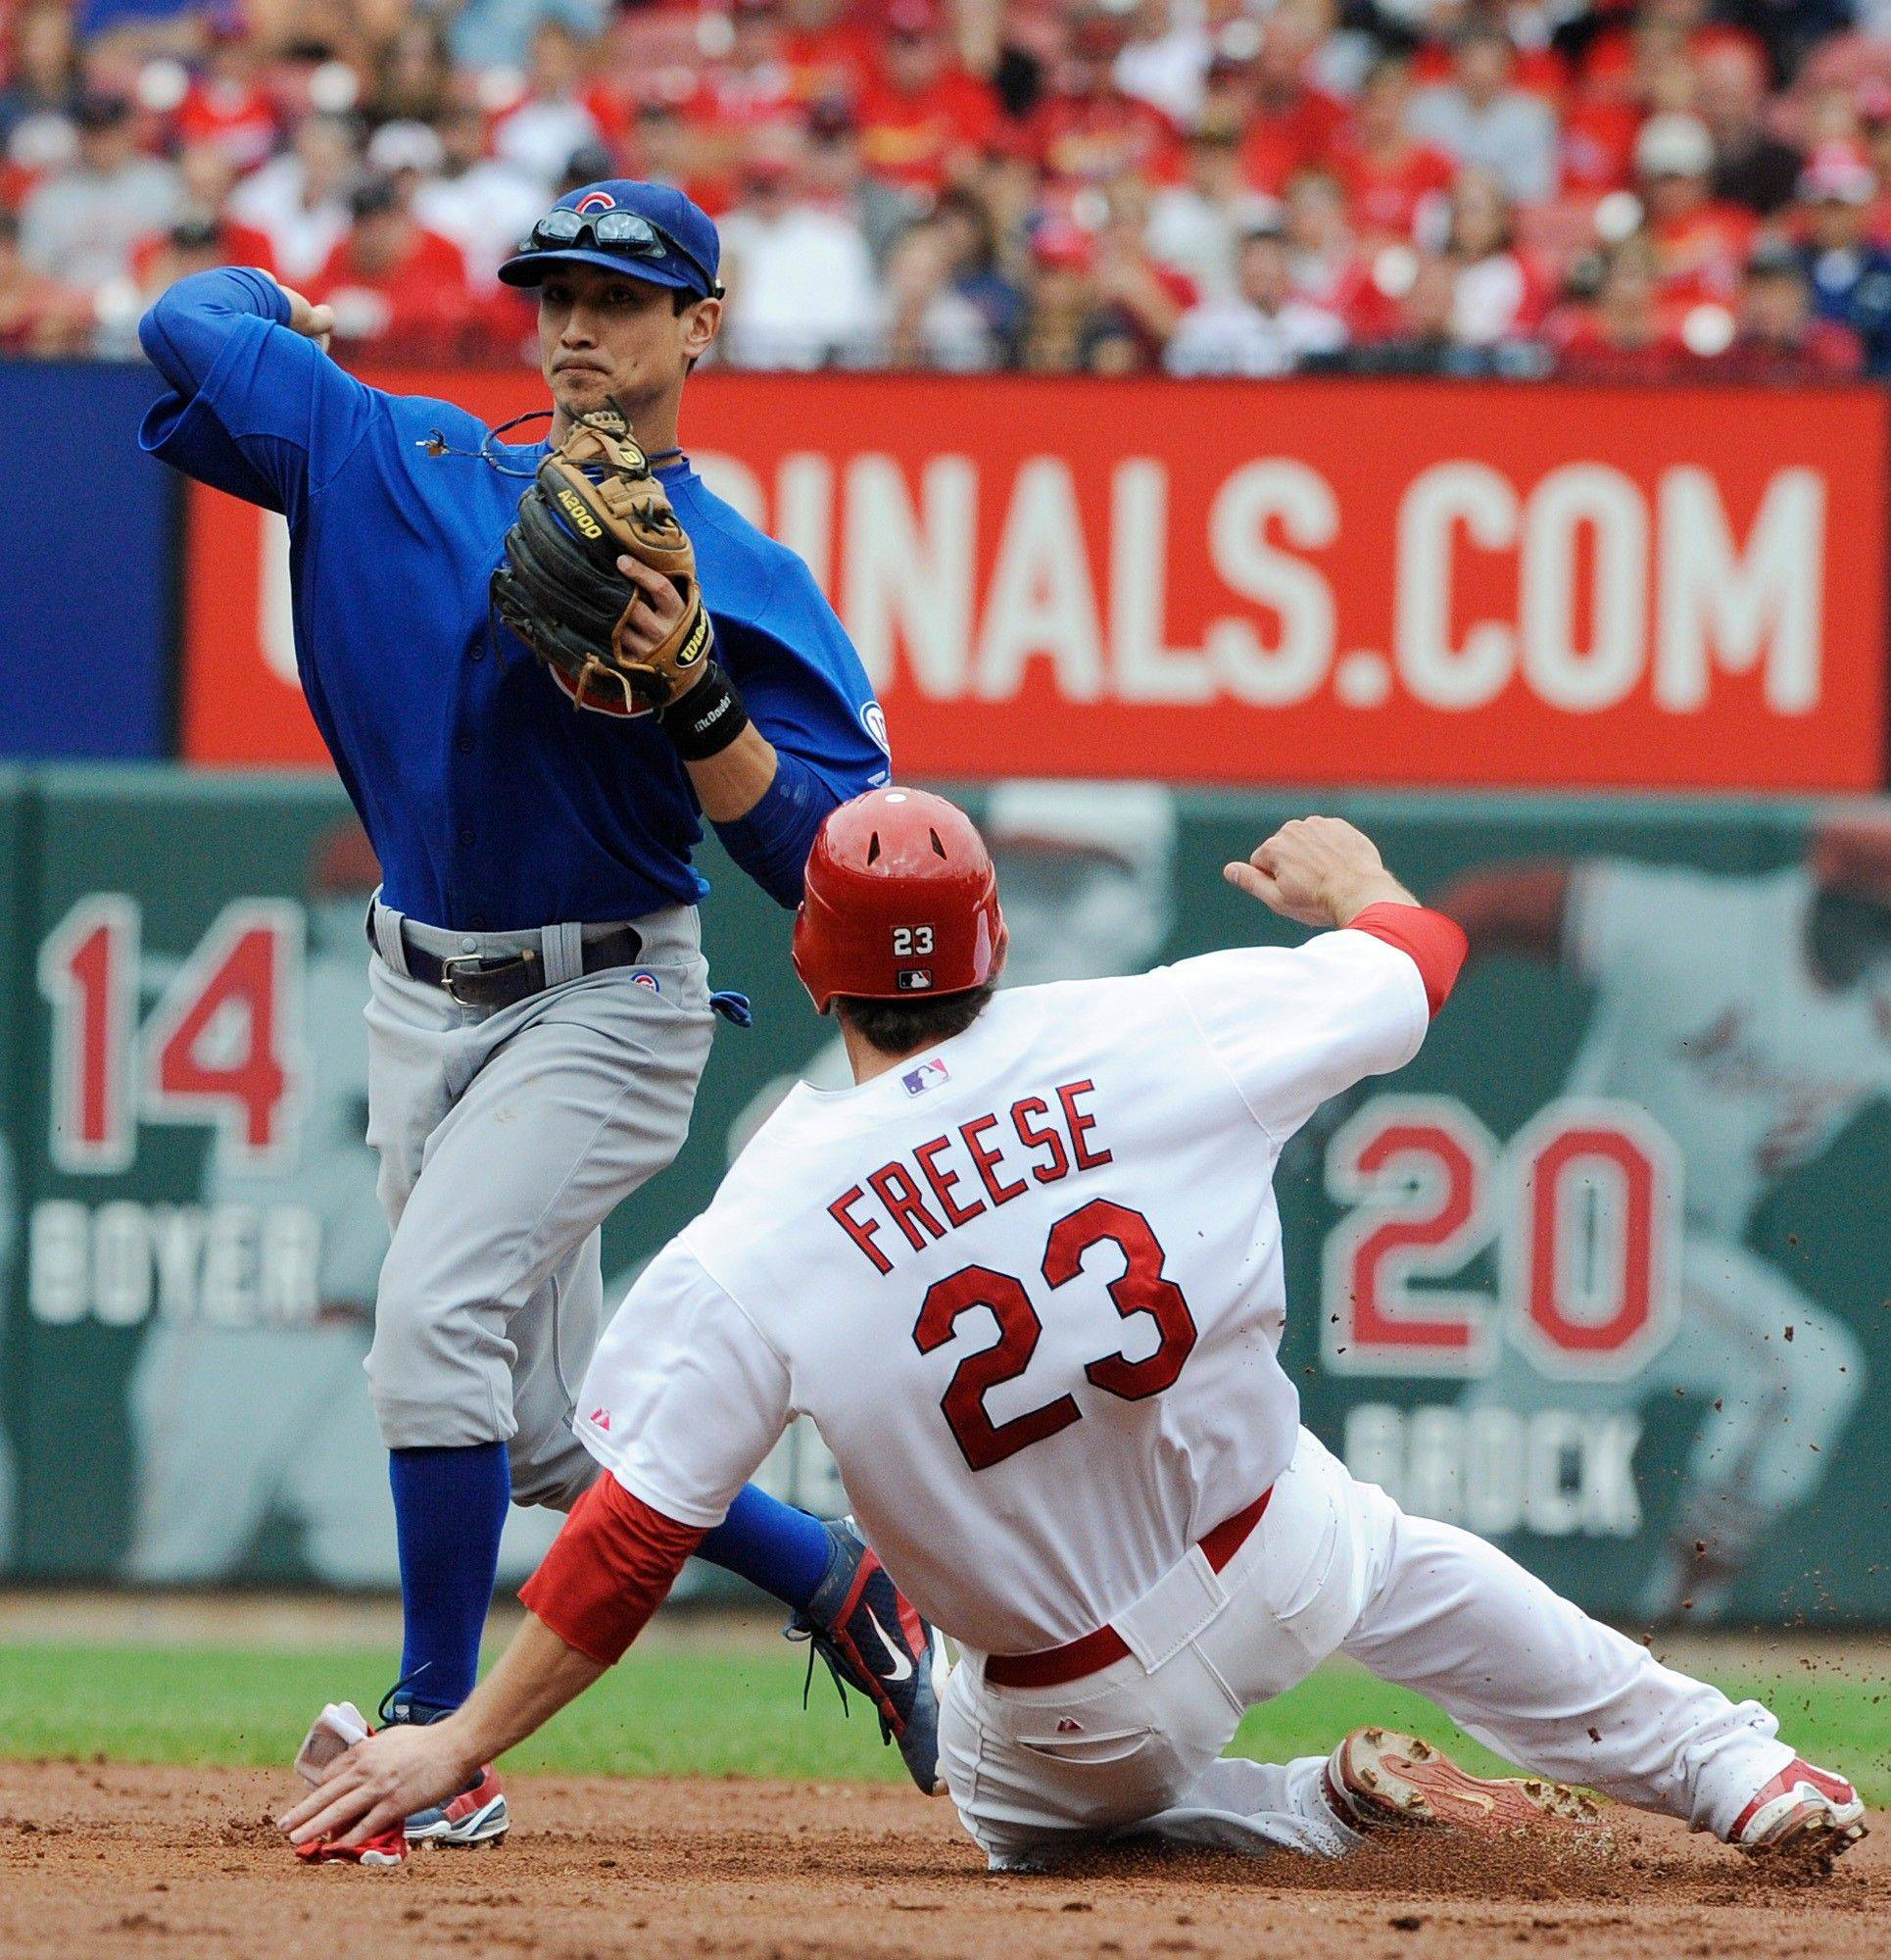 The St. Louis Cardinals� David Freese is forced out at second as the Cubs� Darwin Barney, left, completes the double play in Sunday�s second inning in St. Louis.